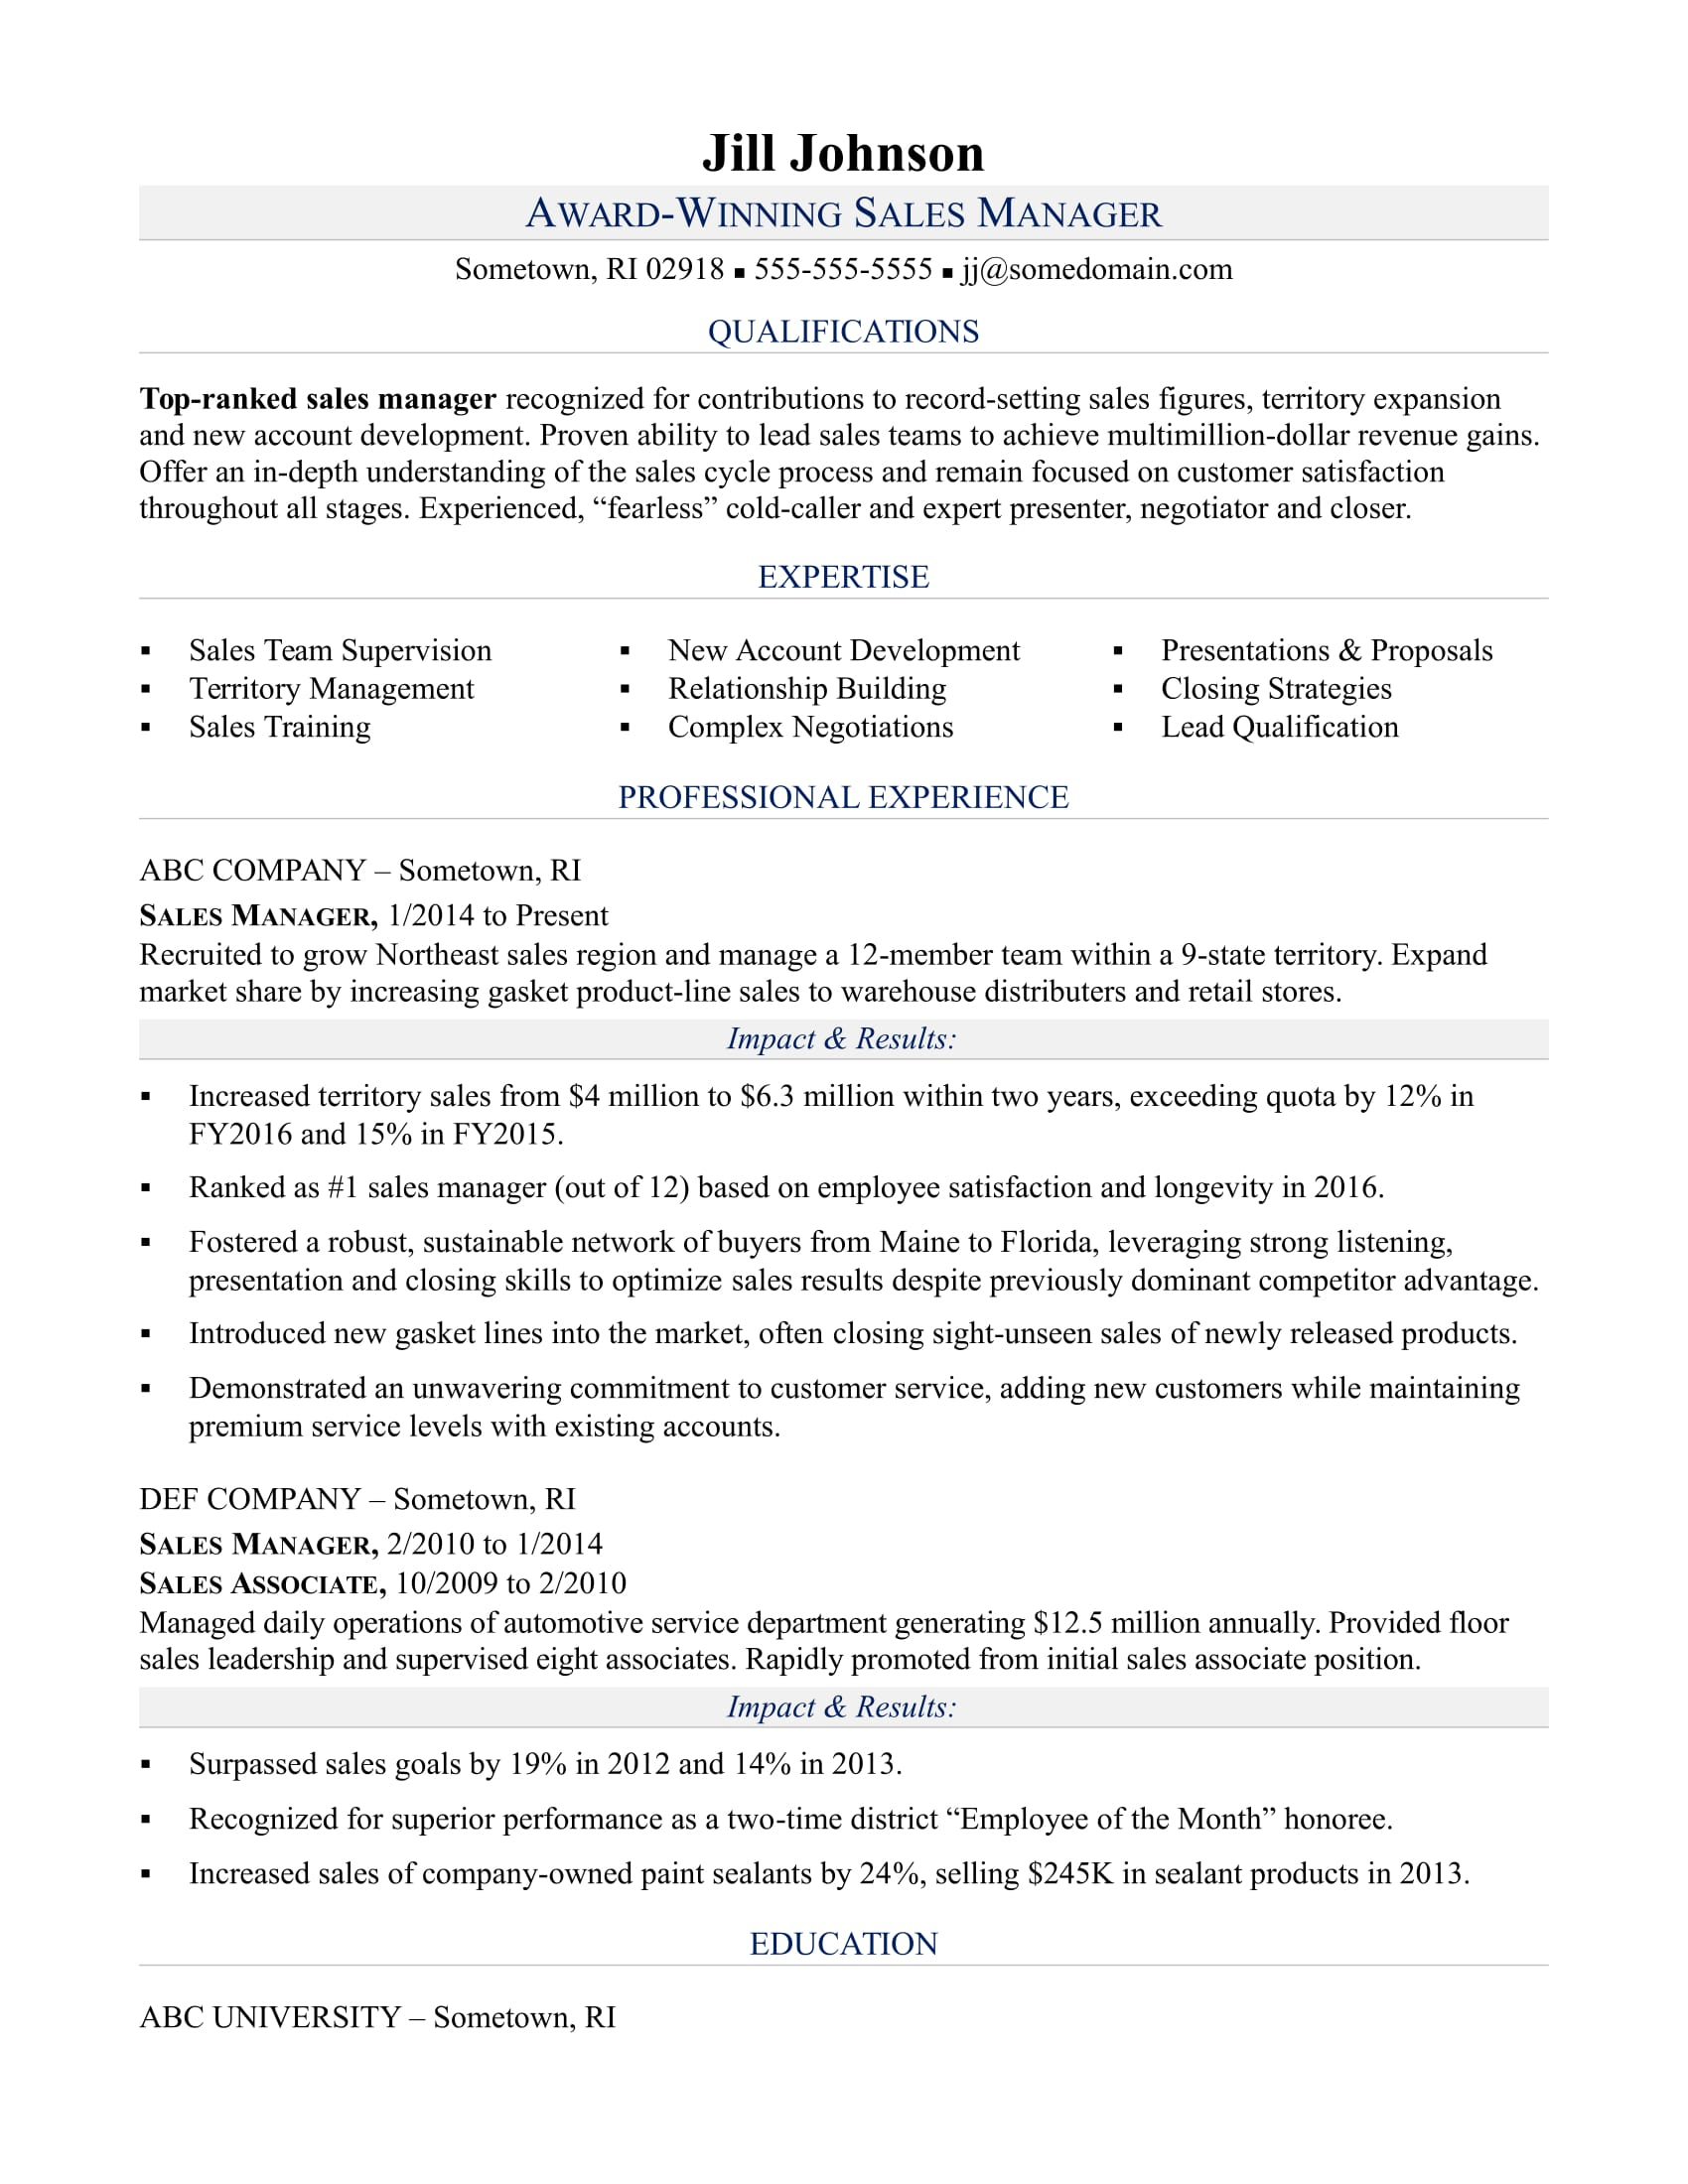 Sample Resume For A Sales Manager  Manager Skills For Resume